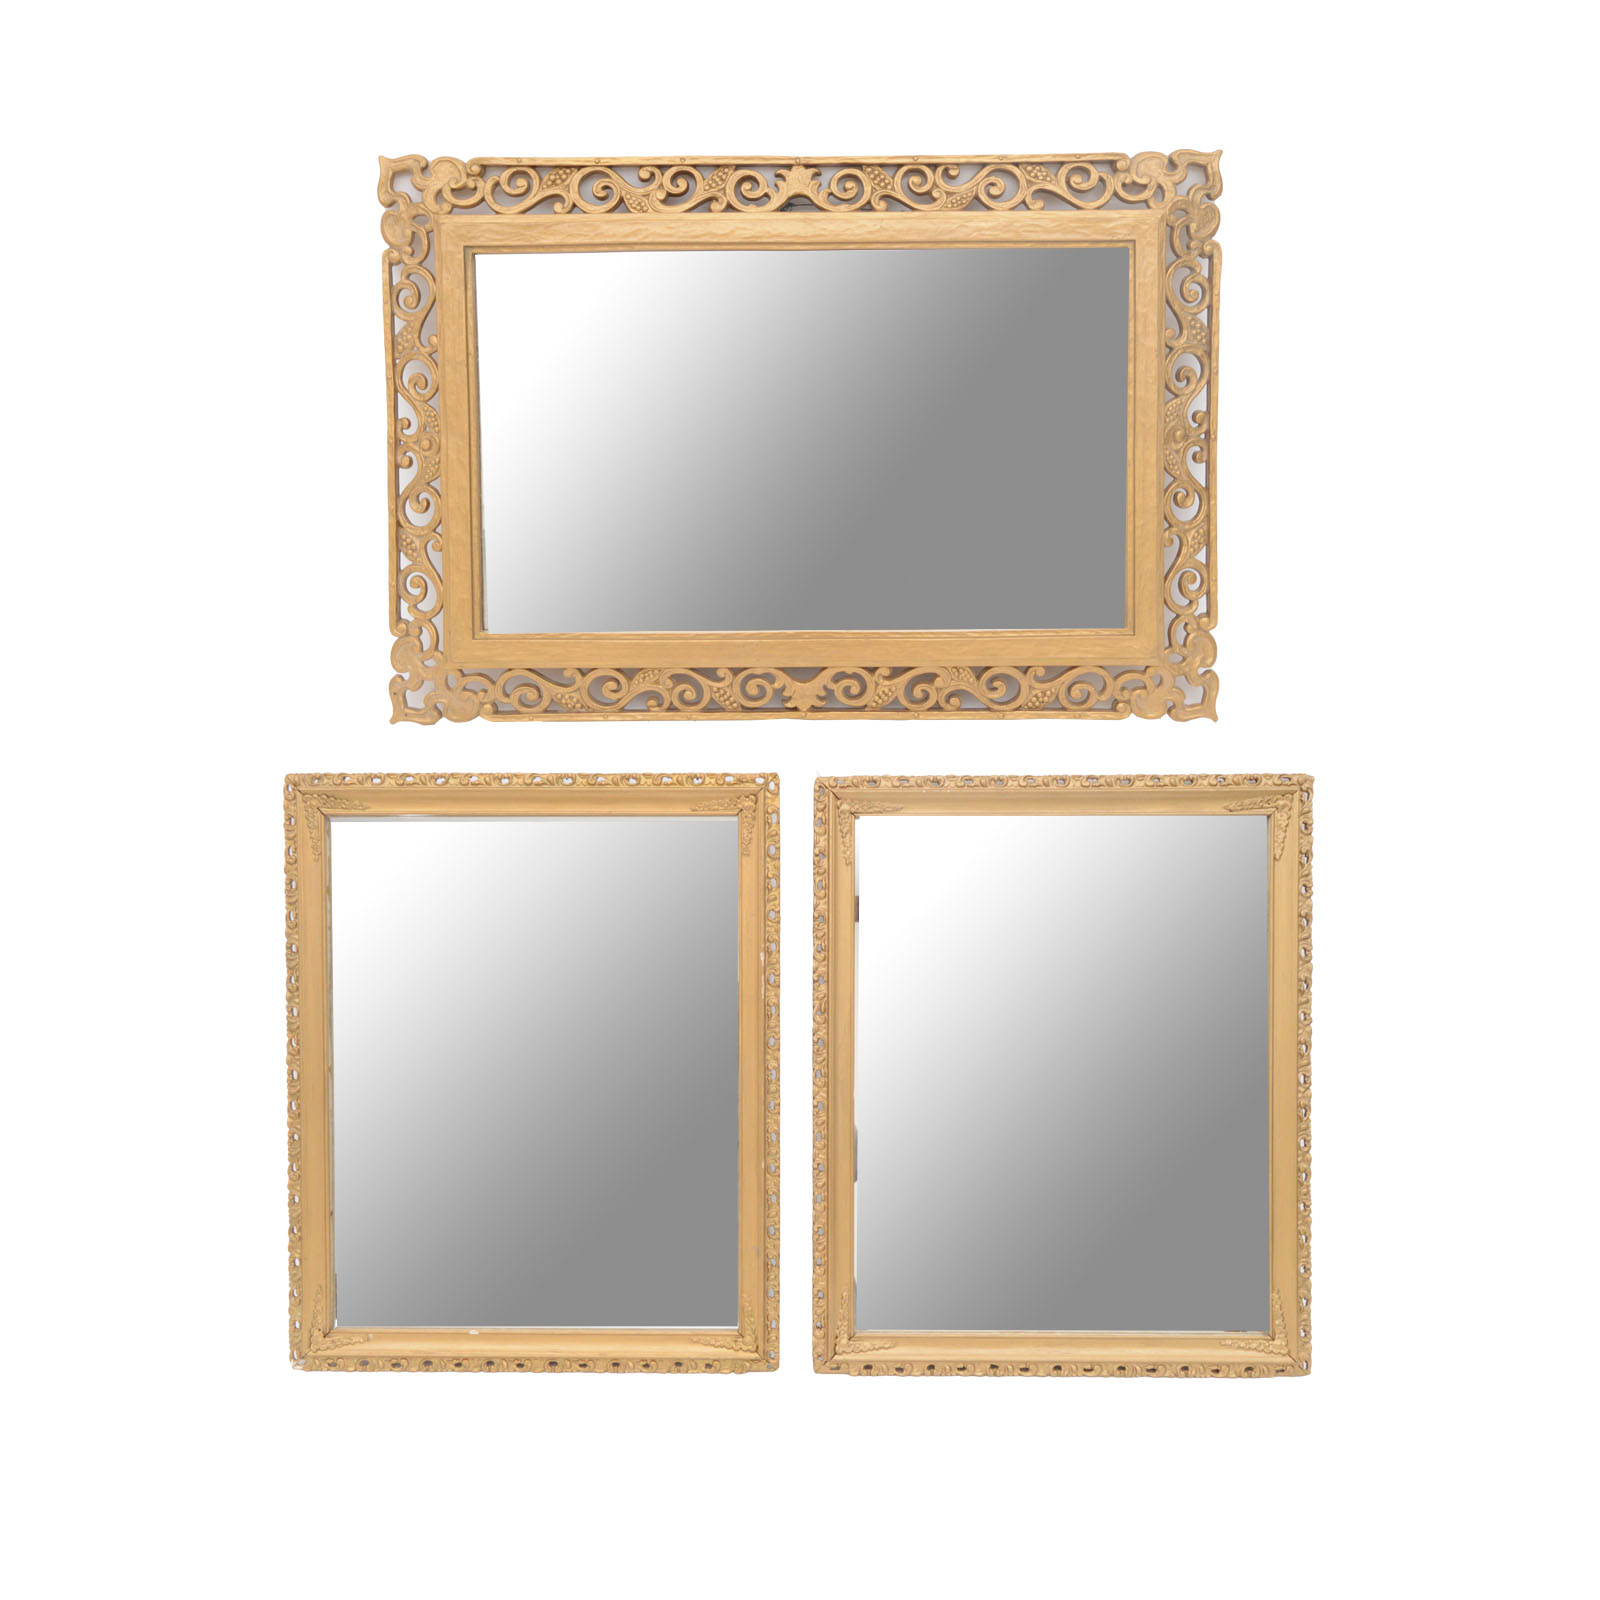 1600x1600 Vintage Mirrors With Scroll Frames Ebth